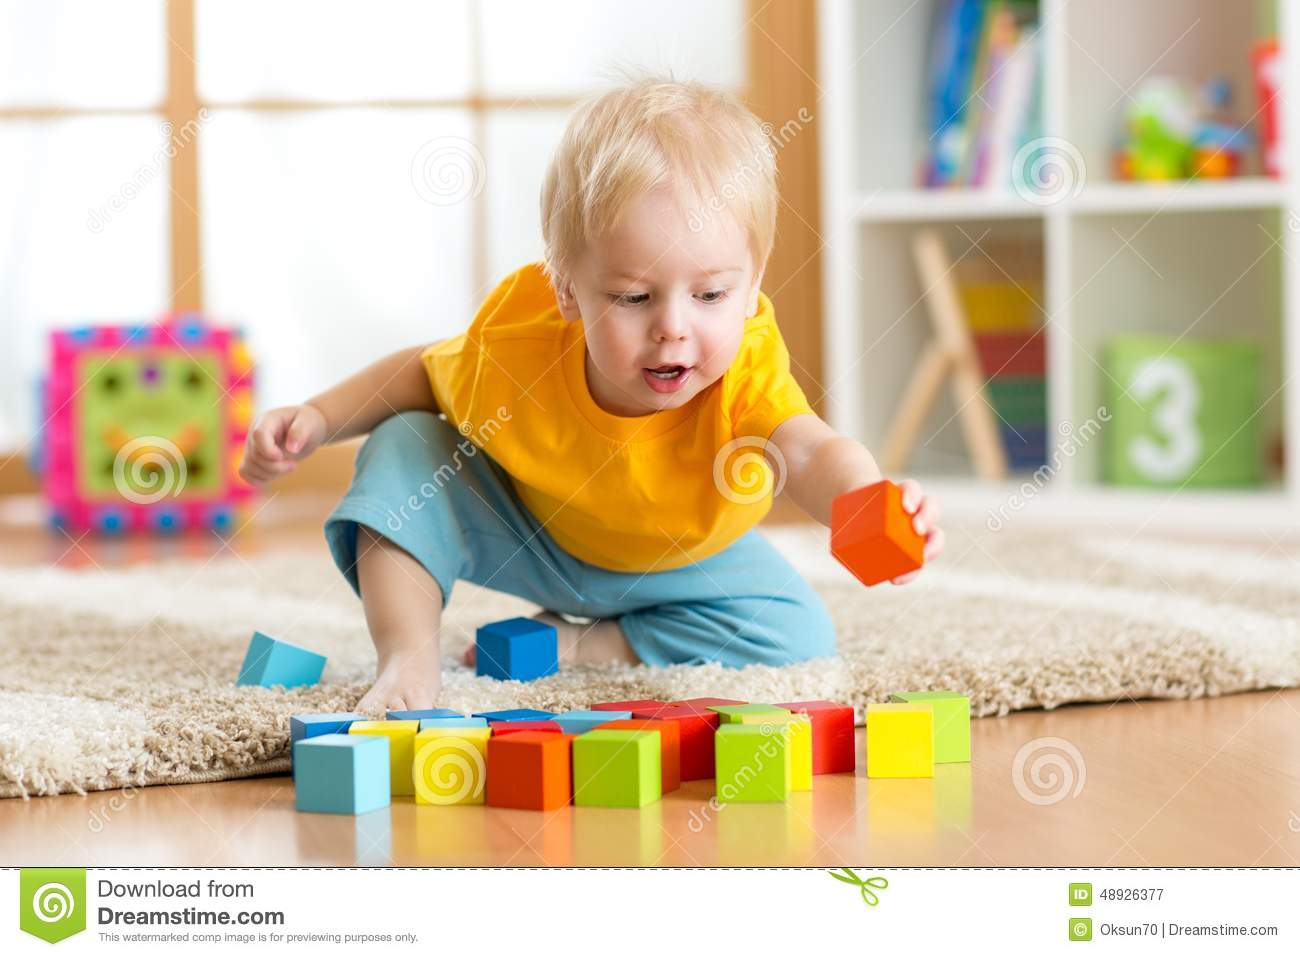 Home Play Toys : Child toddler playing wooden toys at home stock photo